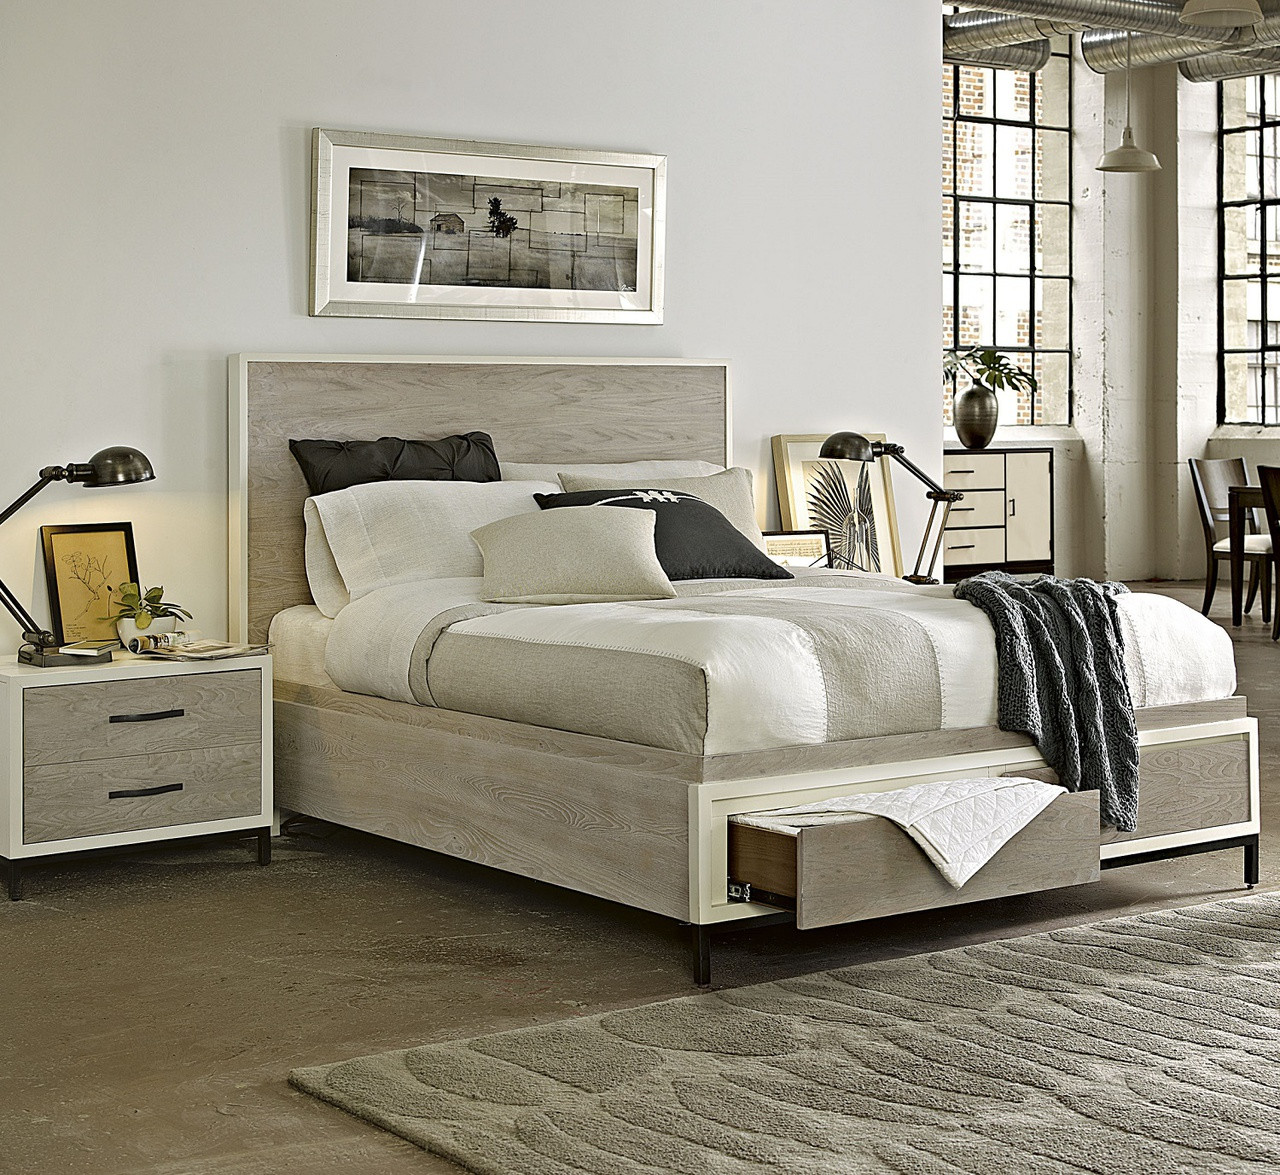 Modern Gray Platform Storage Bedroom Set - Queen